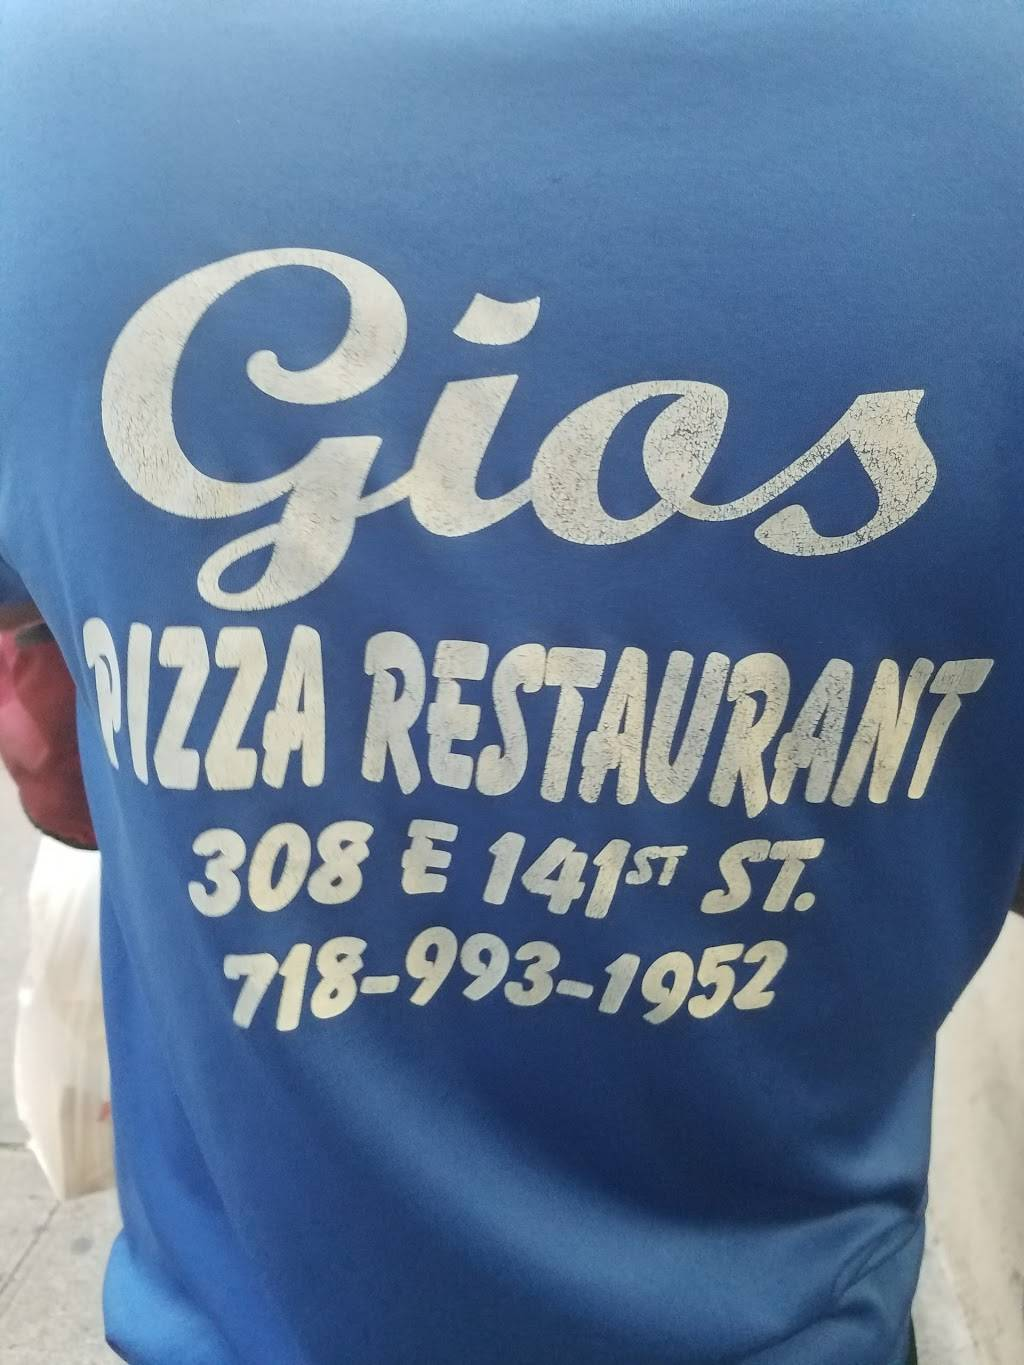 Gios | meal delivery | 308 E 141st St, Bronx, NY 10454, USA | 7189931952 OR +1 718-993-1952